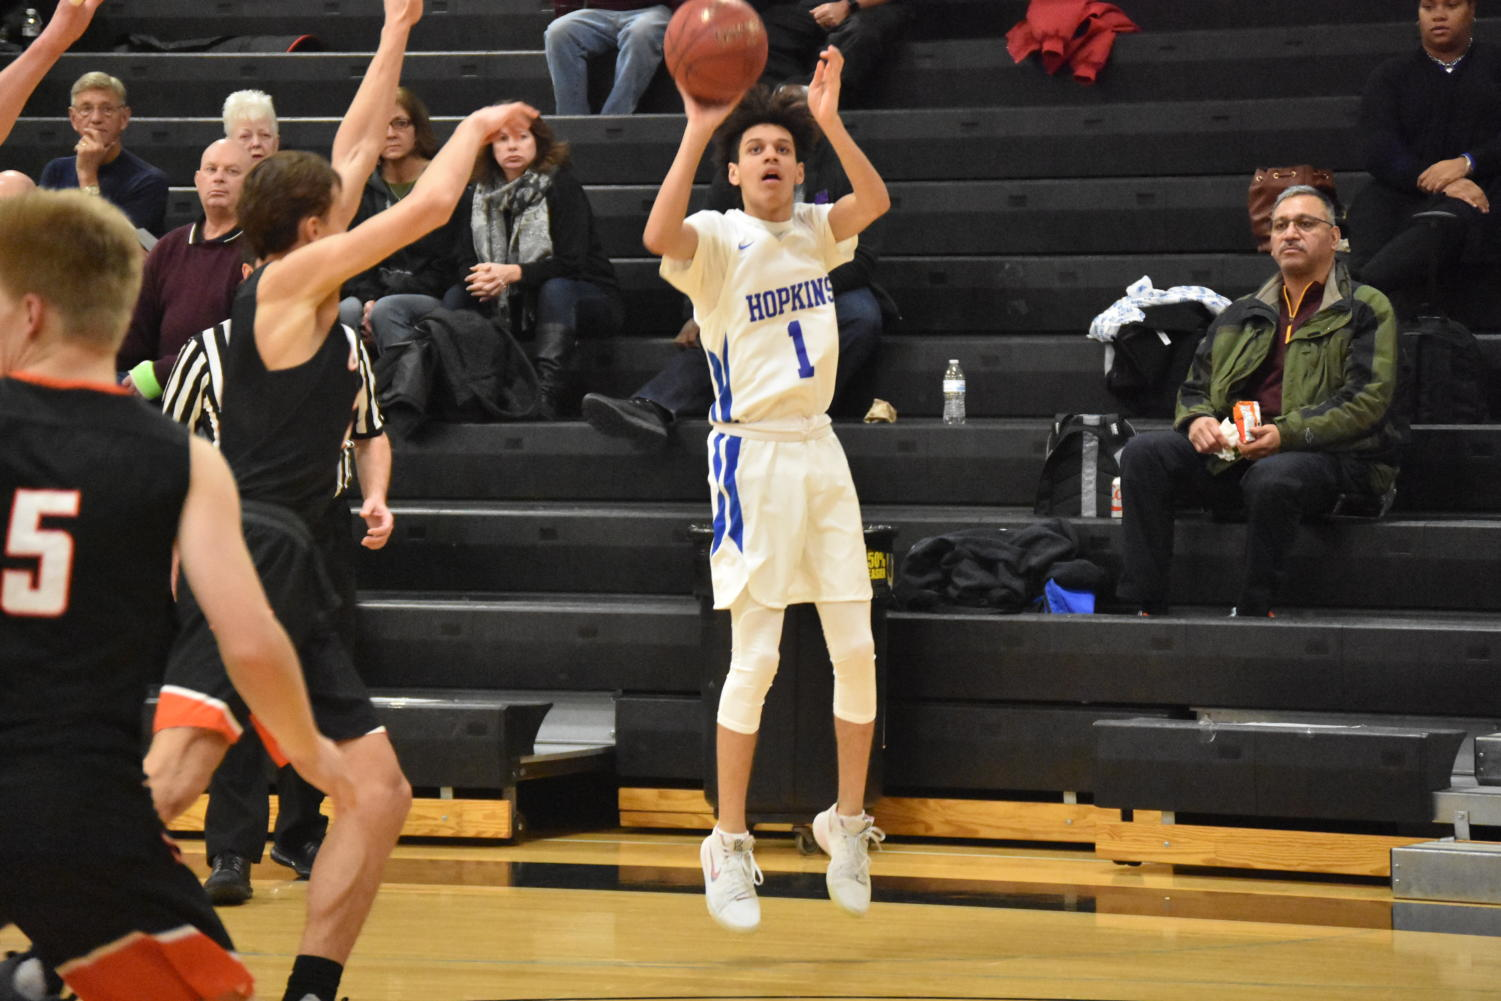 Blaise Beauchamp, sophomore, shoots three from corner. The Royals beat the Orioles 98-70.